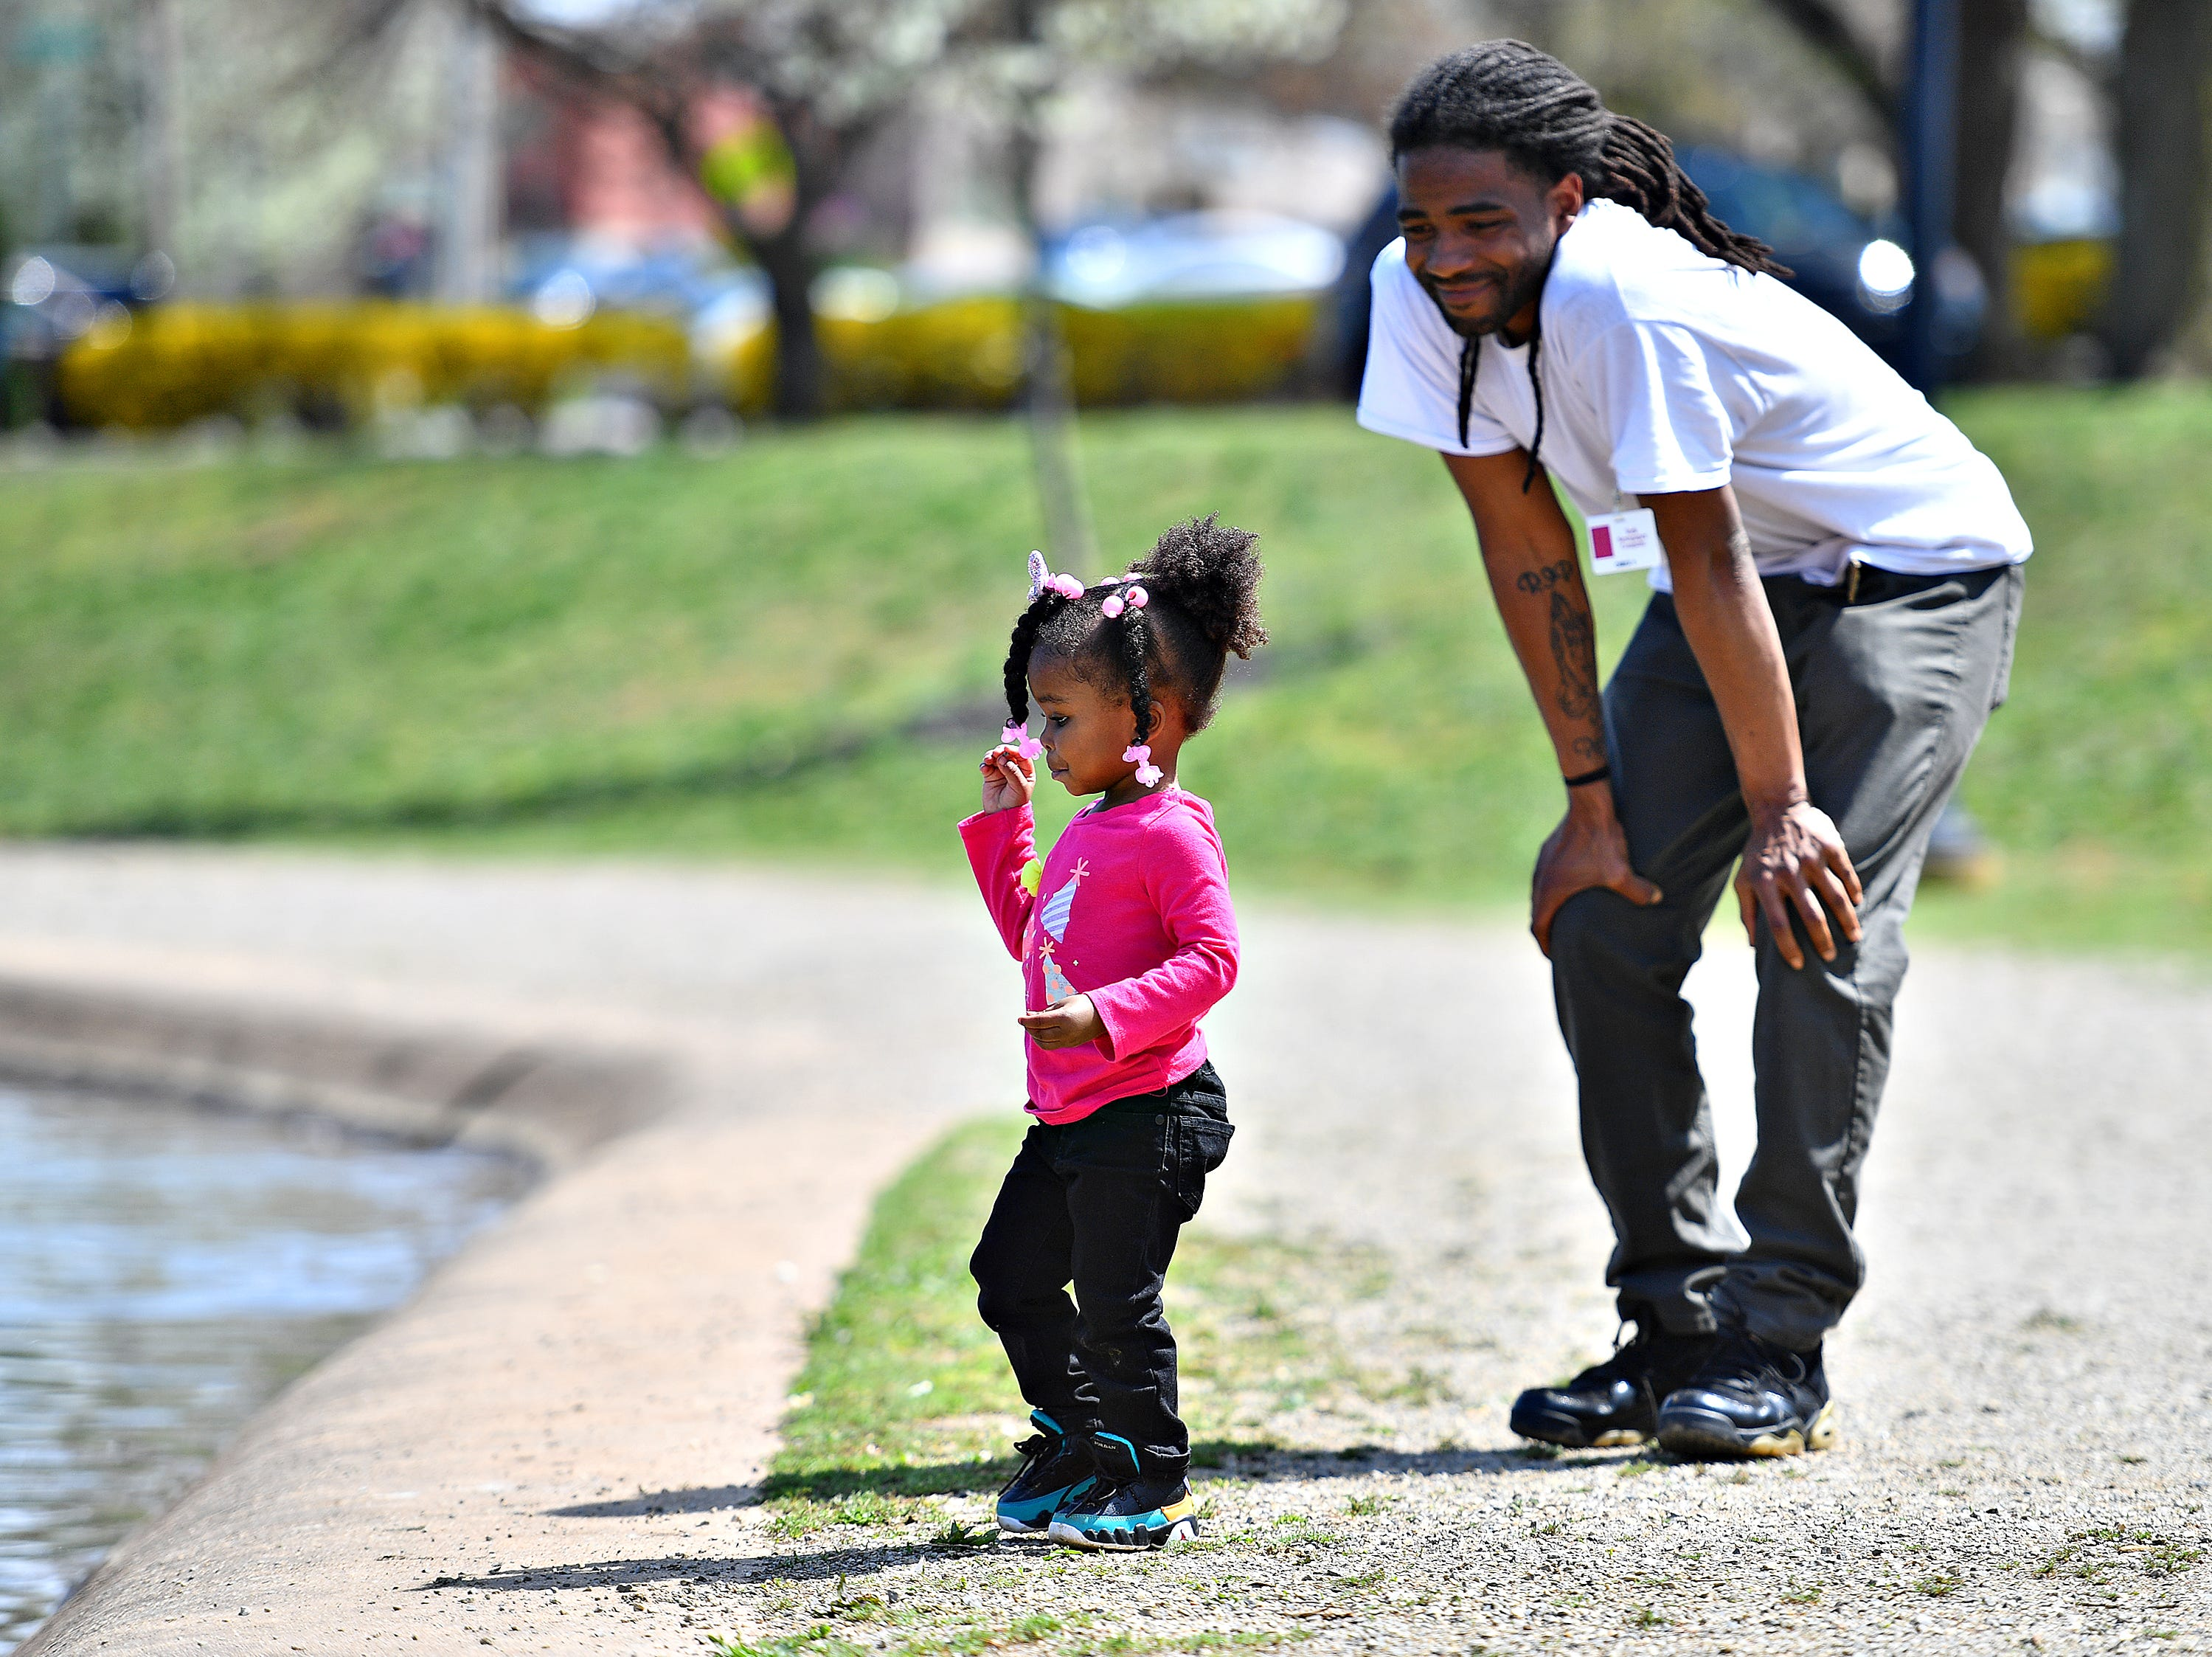 Ireyanna Rice, 2, plays near the ducks while her father Marquis Rice, of York City, looks on following the 44th Annual York City Easter Egg Hunt at Kiwanis Lake in York City, Saturday, April 13, 2019. Dawn J. Sagert photo